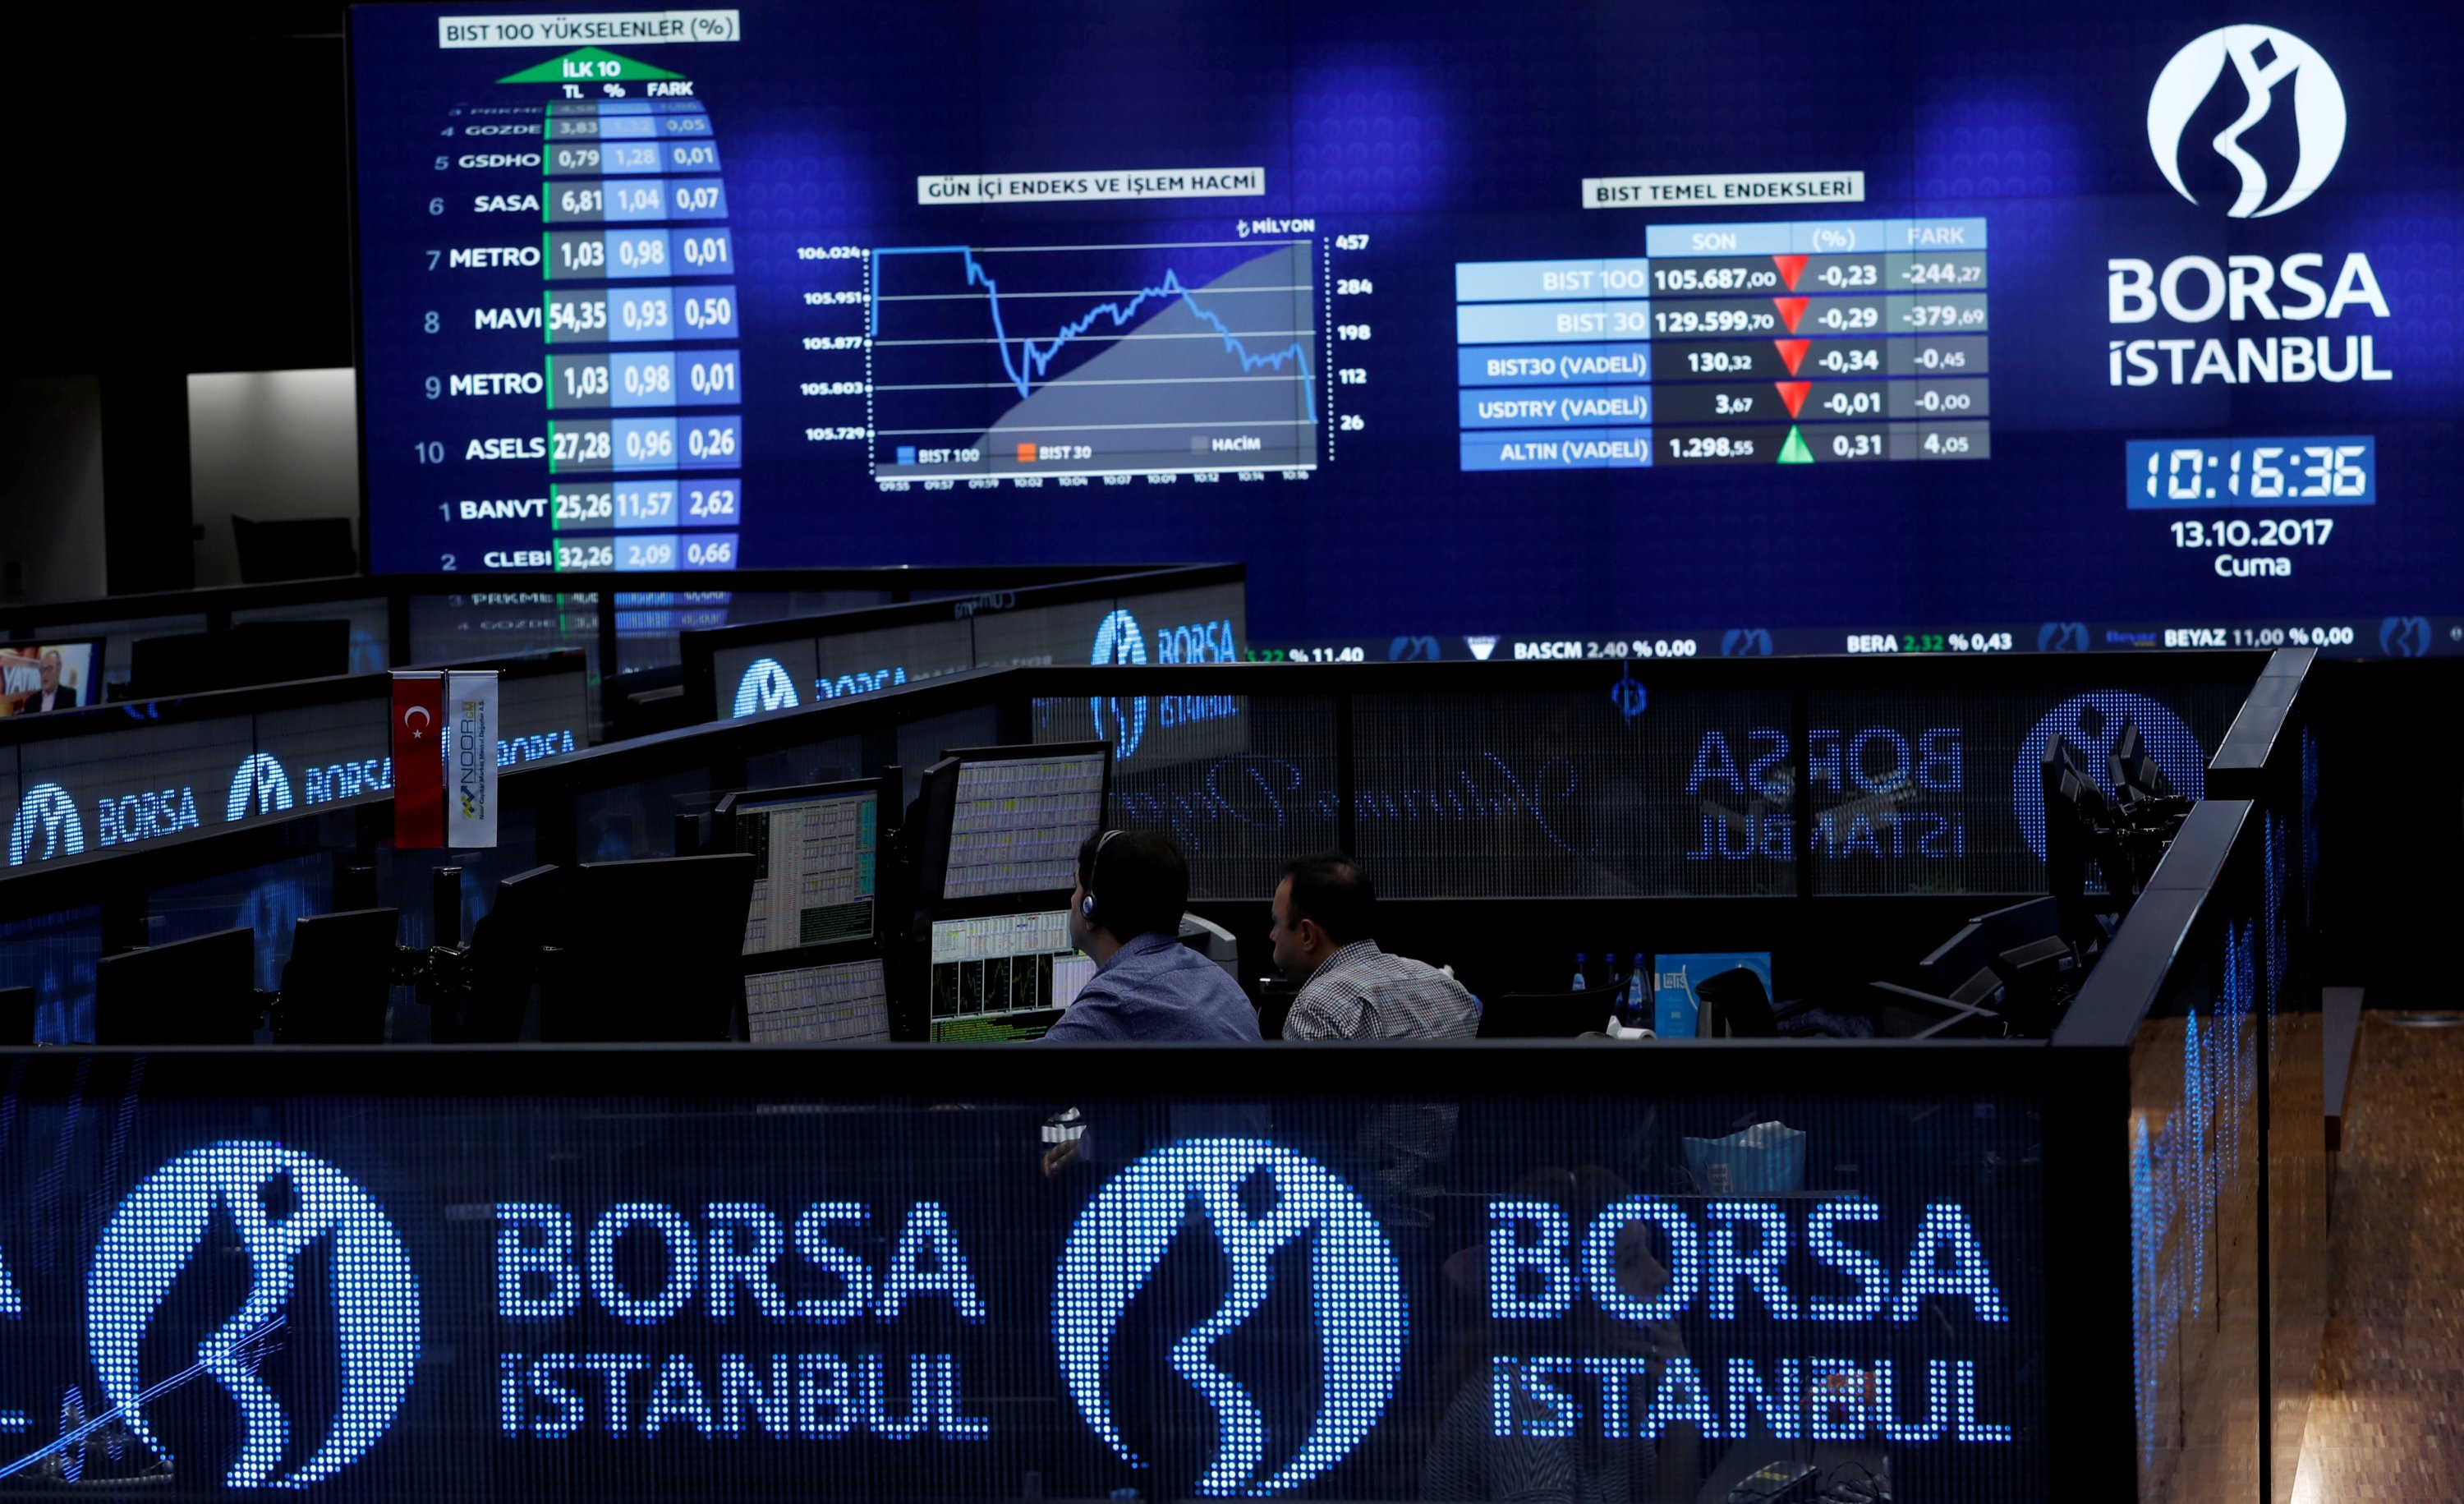 Borsa Istanbul to implement trading curb on index basis thumbnail